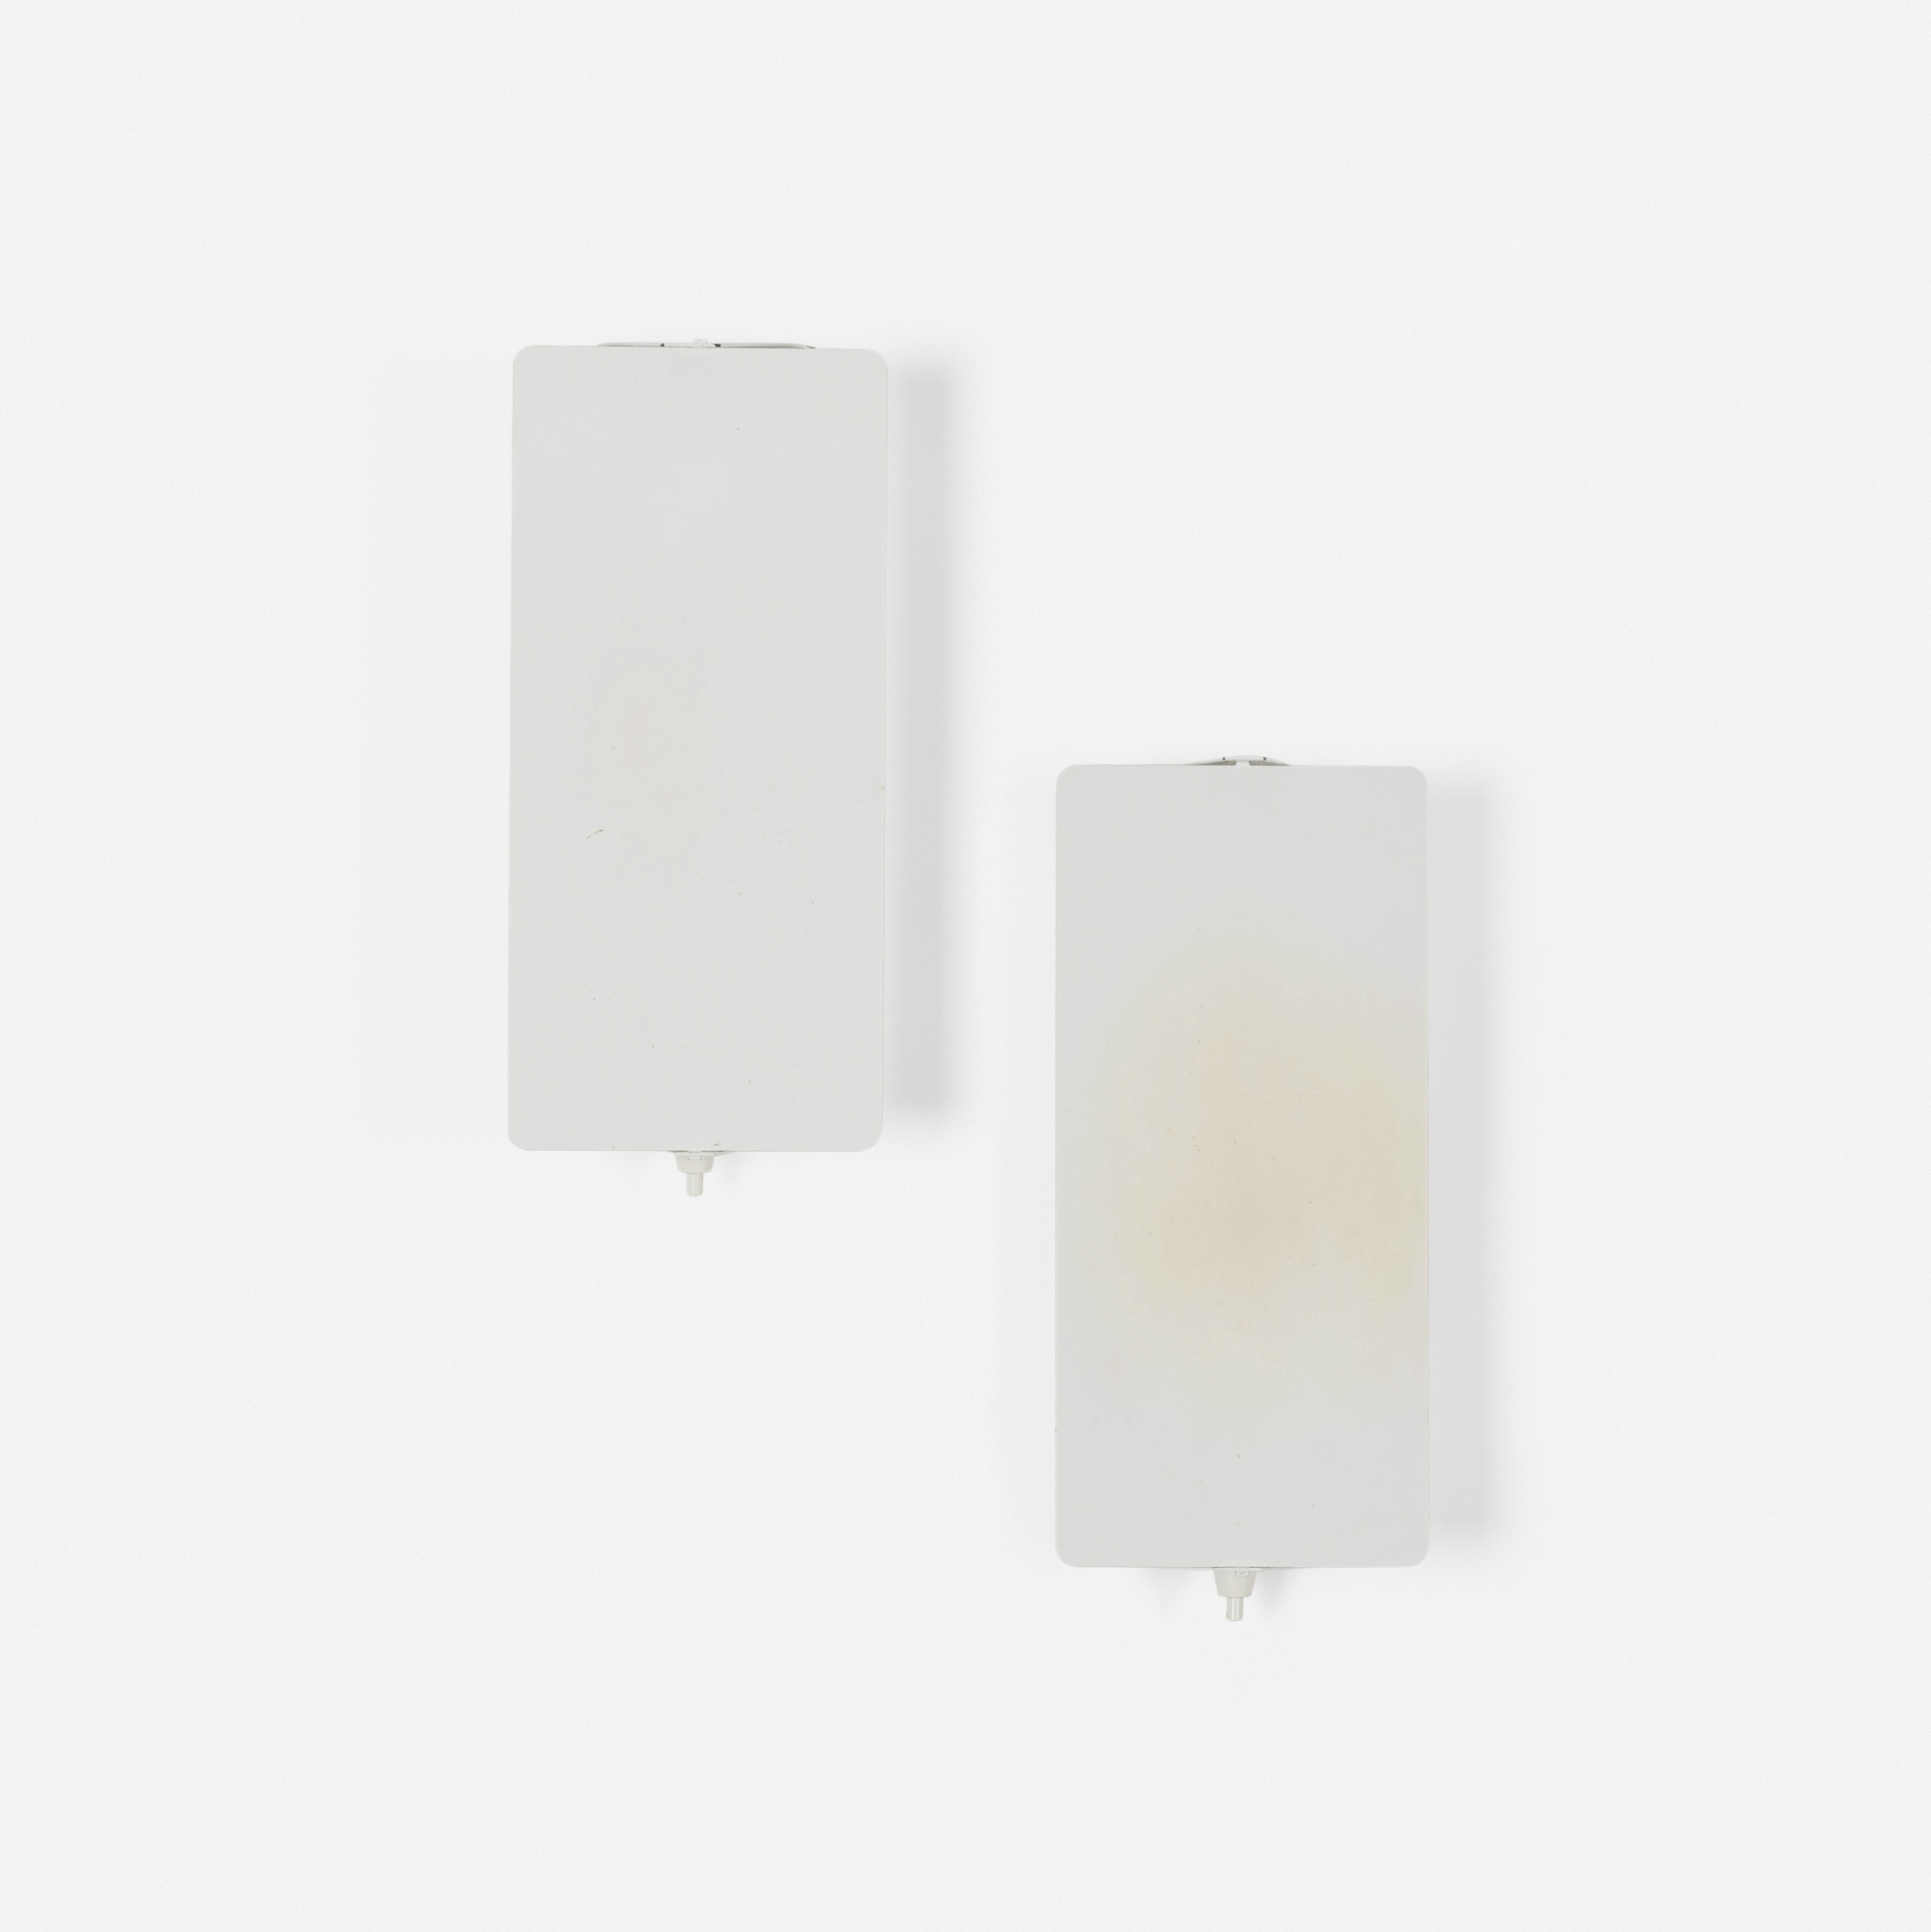 655: Charlotte Perriand / wall lights, pair (1 of 1)